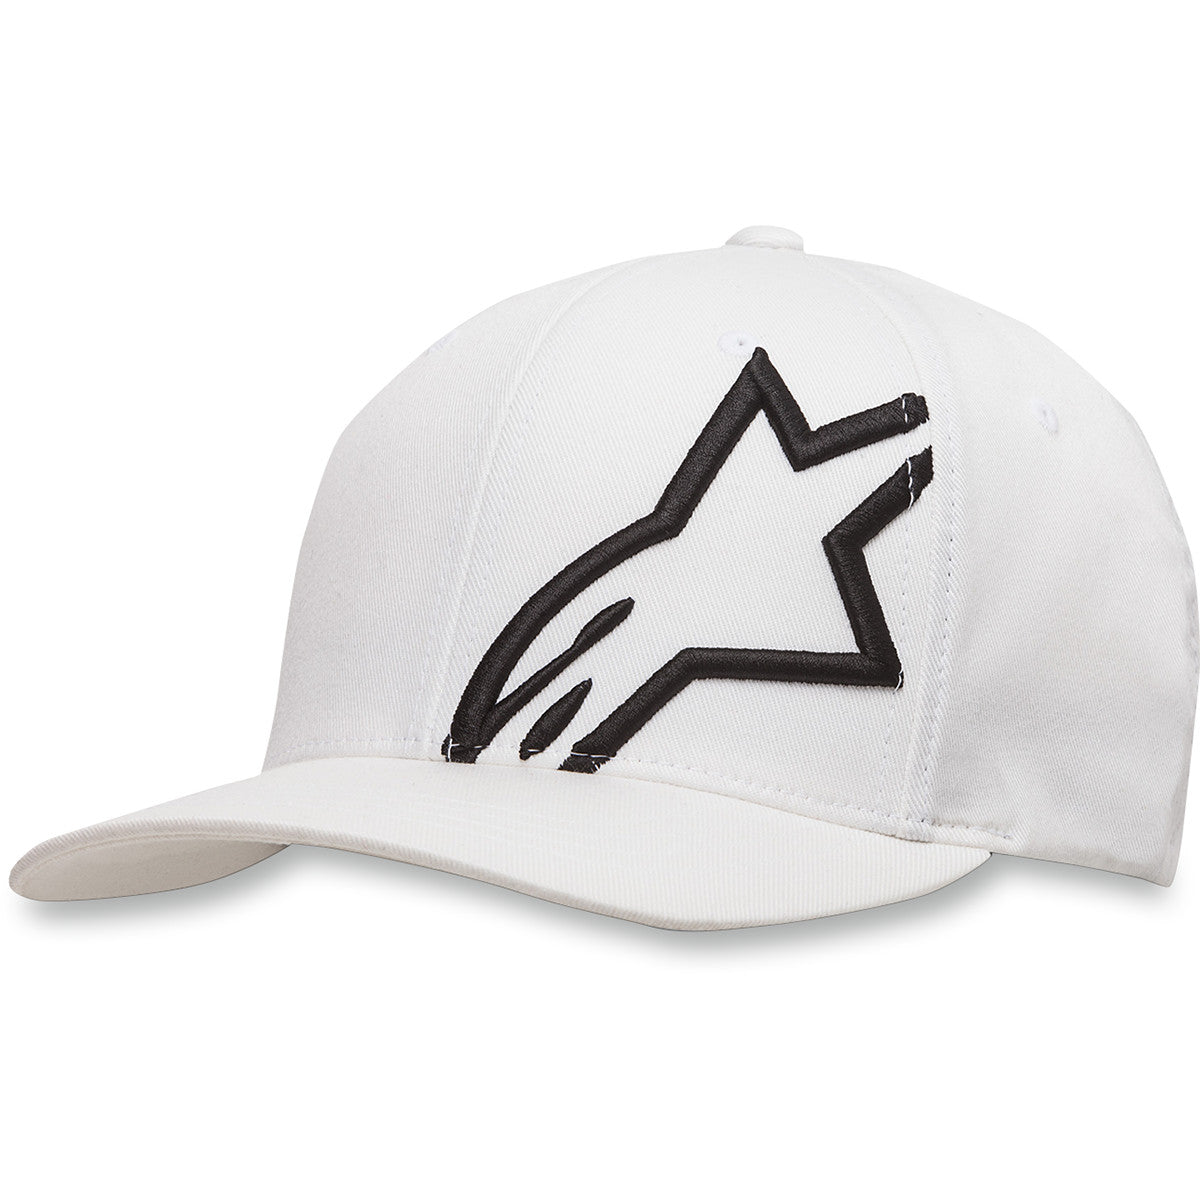 Alpinestars Hats, Corp Shift 2